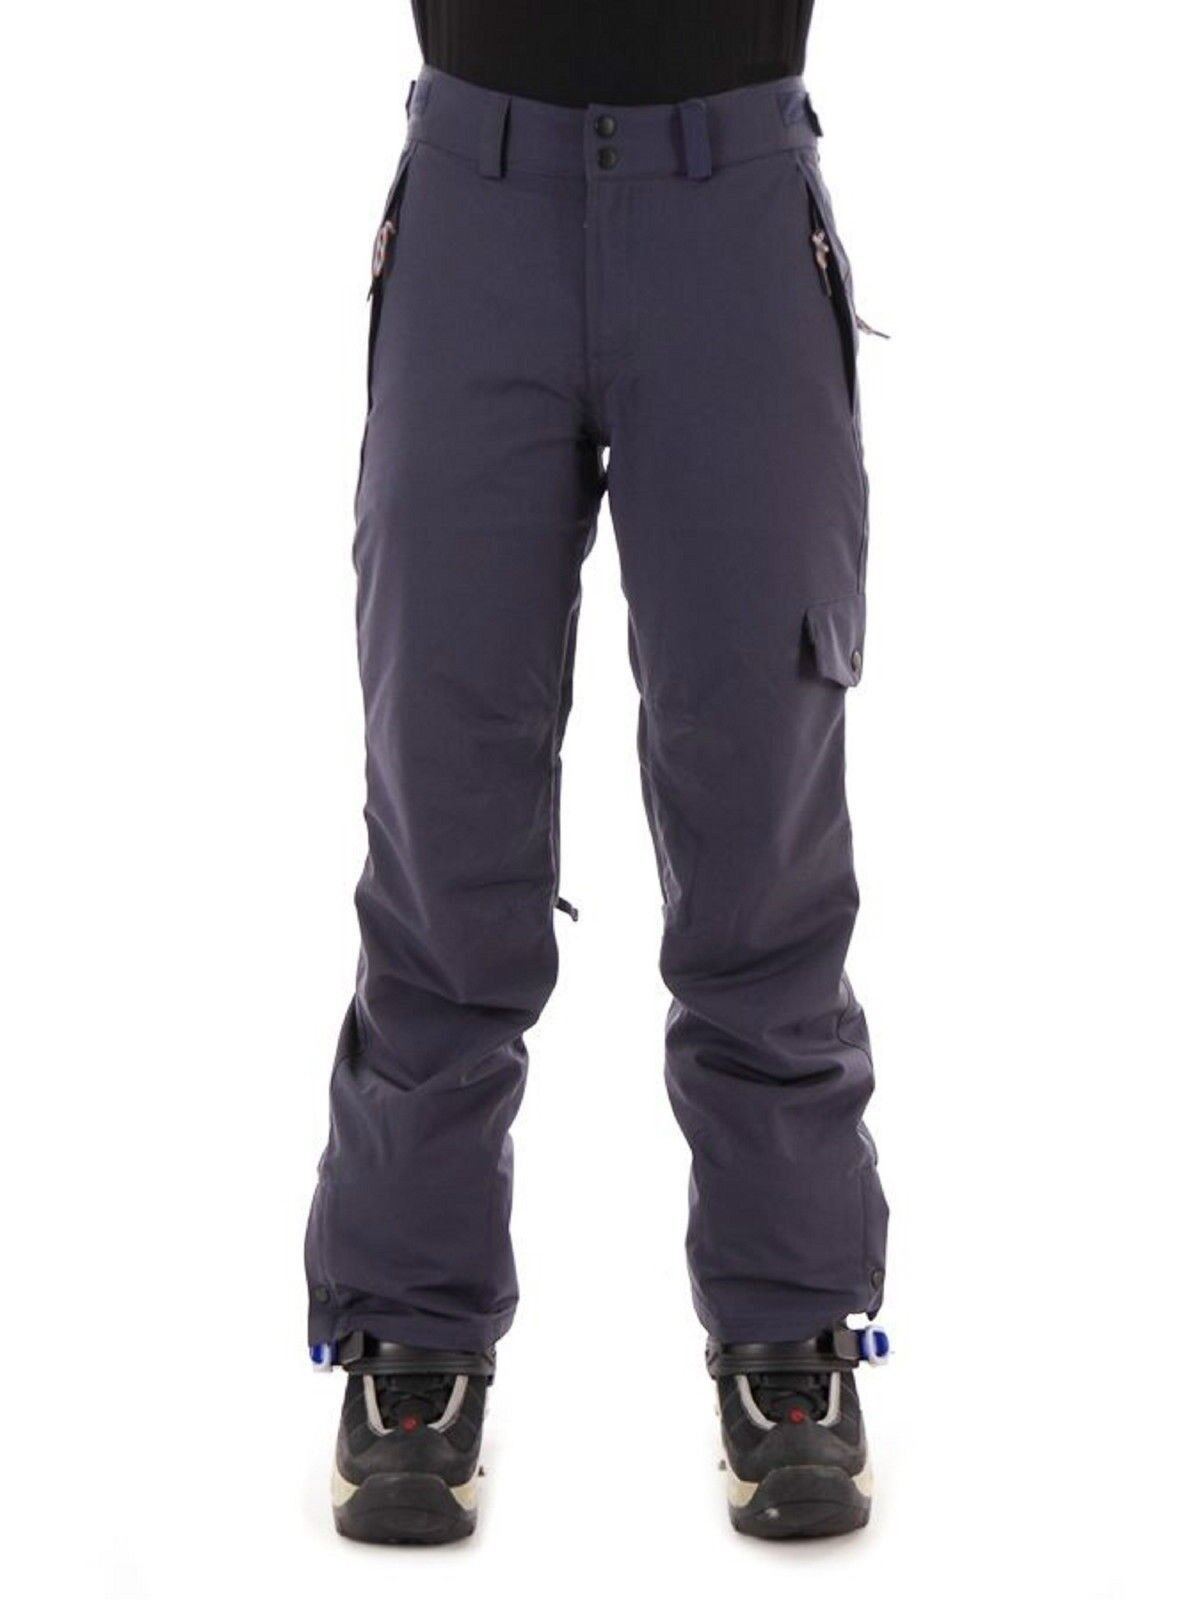 O'NEILL LADIES STREAMLINED SKI PANTS SNOWBOARDING INSULATED WATERPROOF blueE